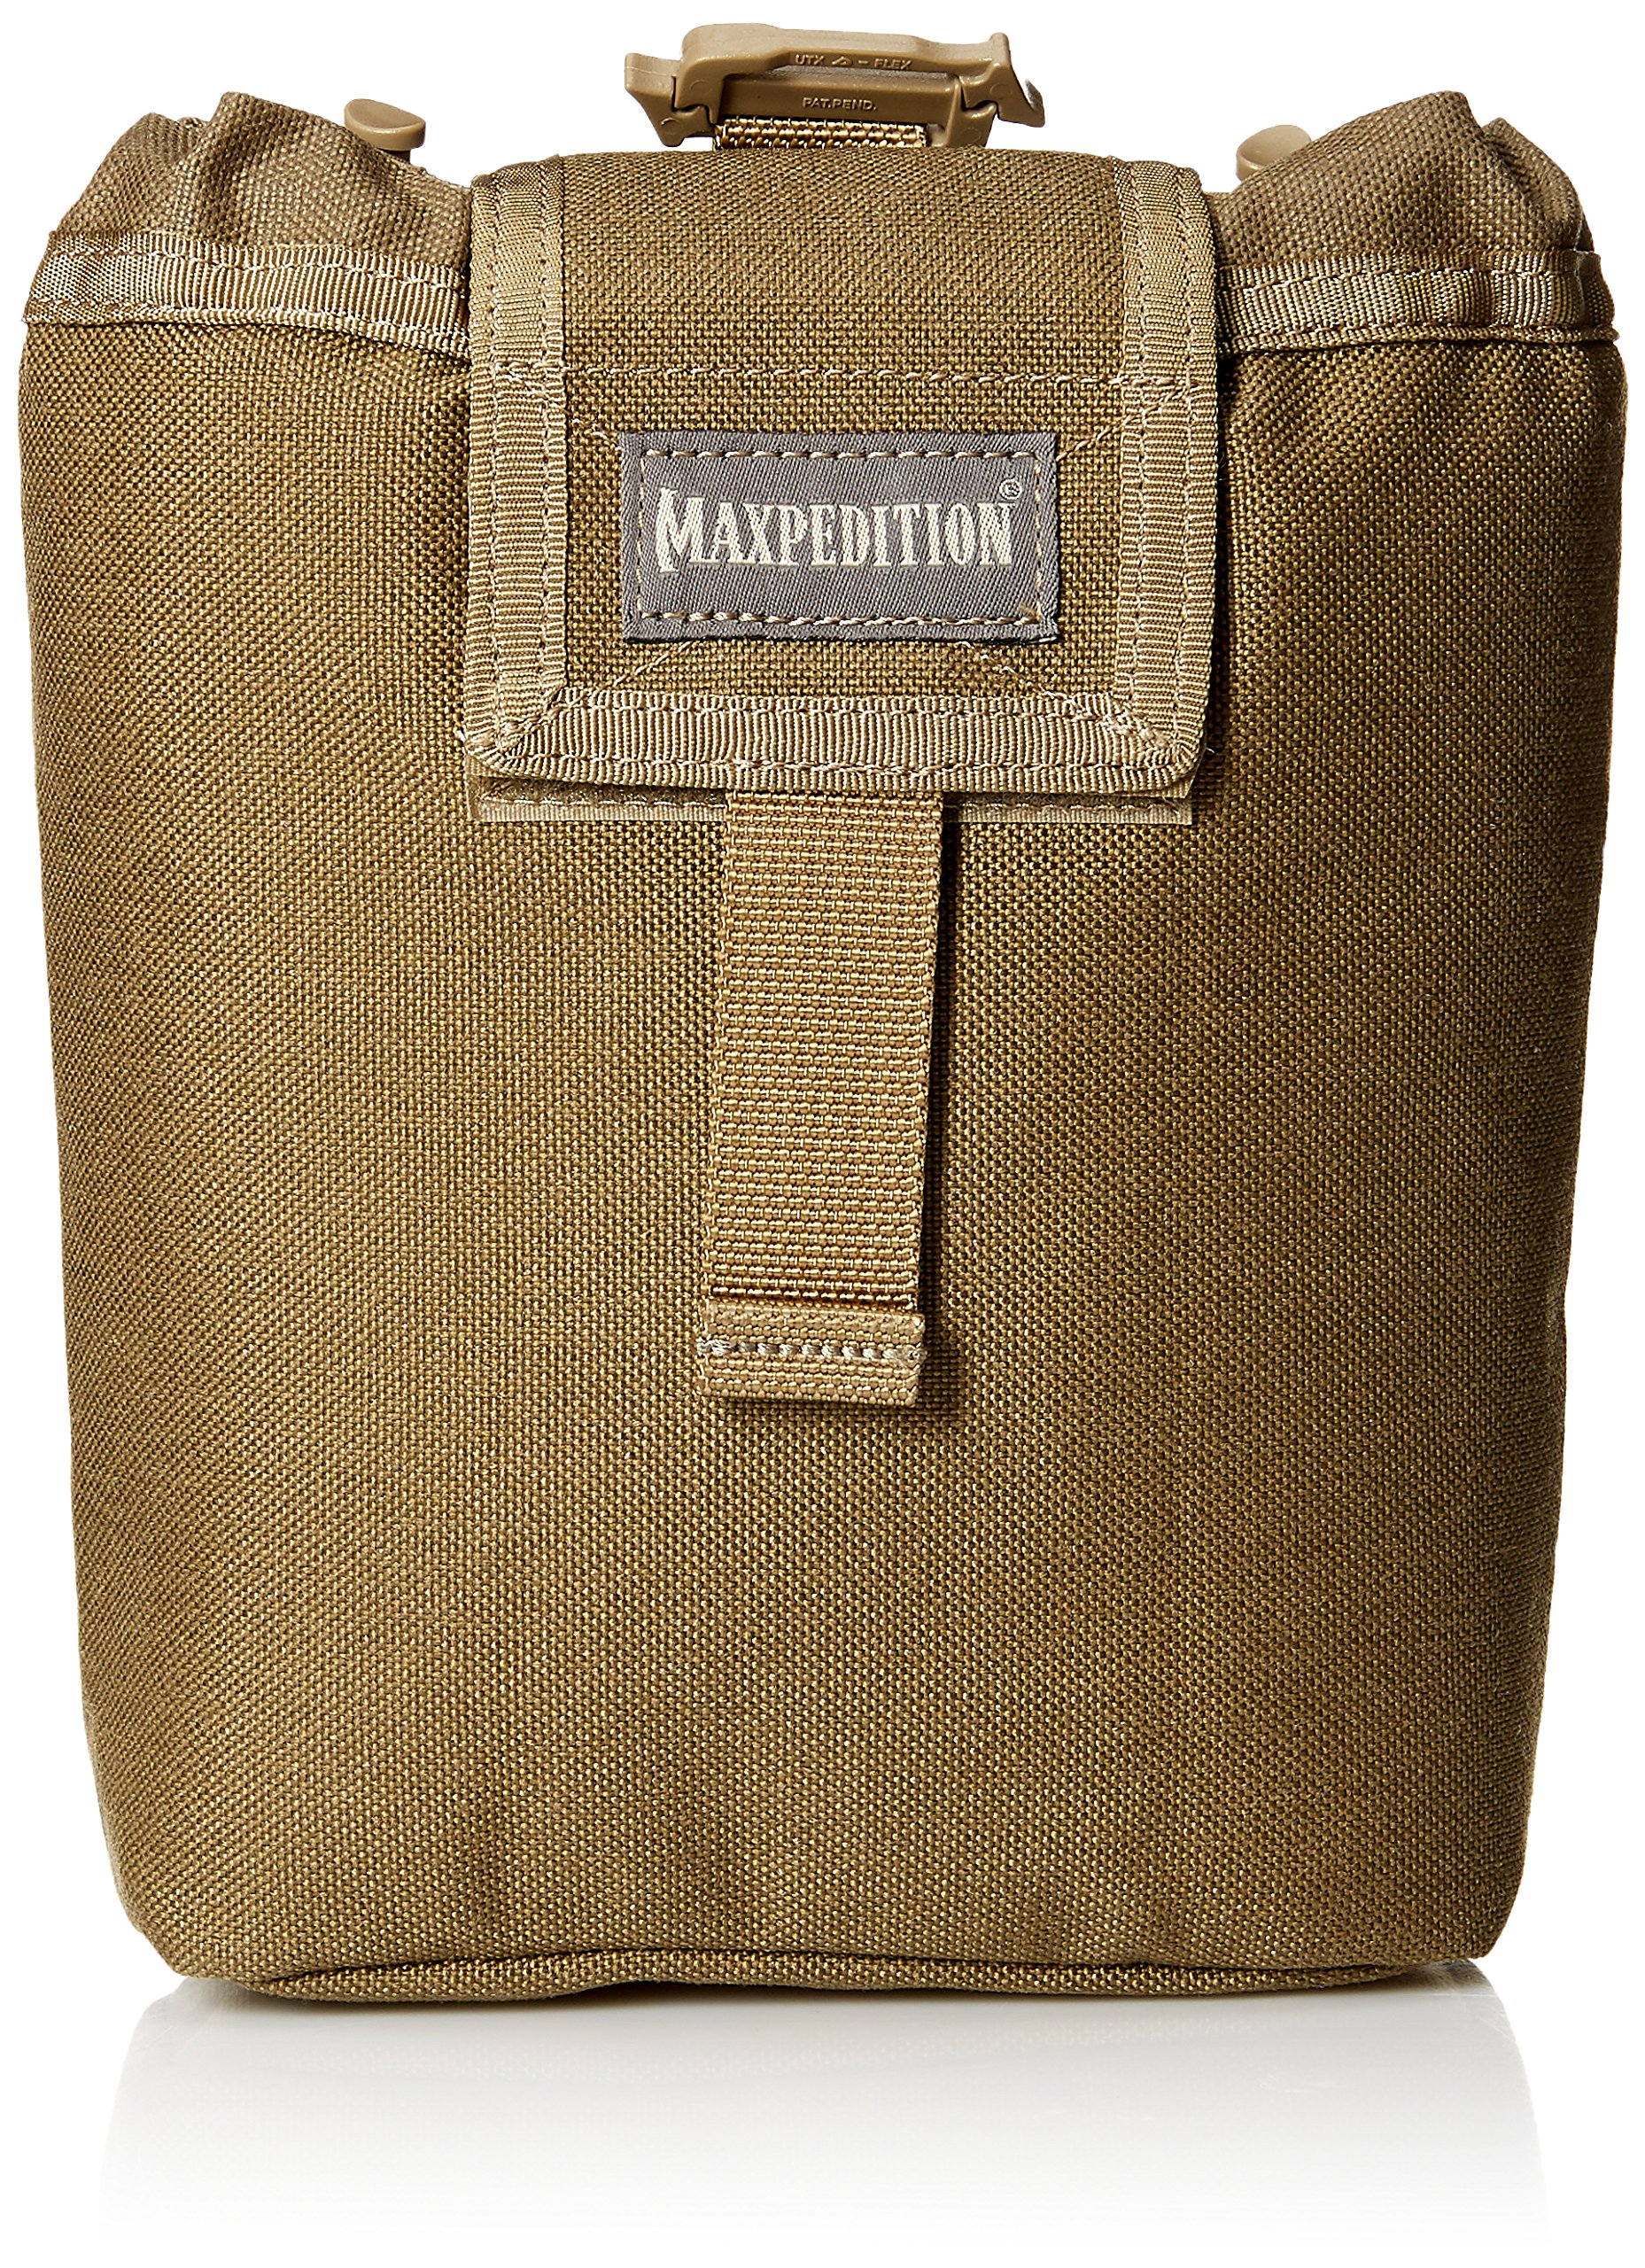 98ab40345a Maxpedition Rollypoly MM Folding Dump Pouch   Game Belts   Bags ...